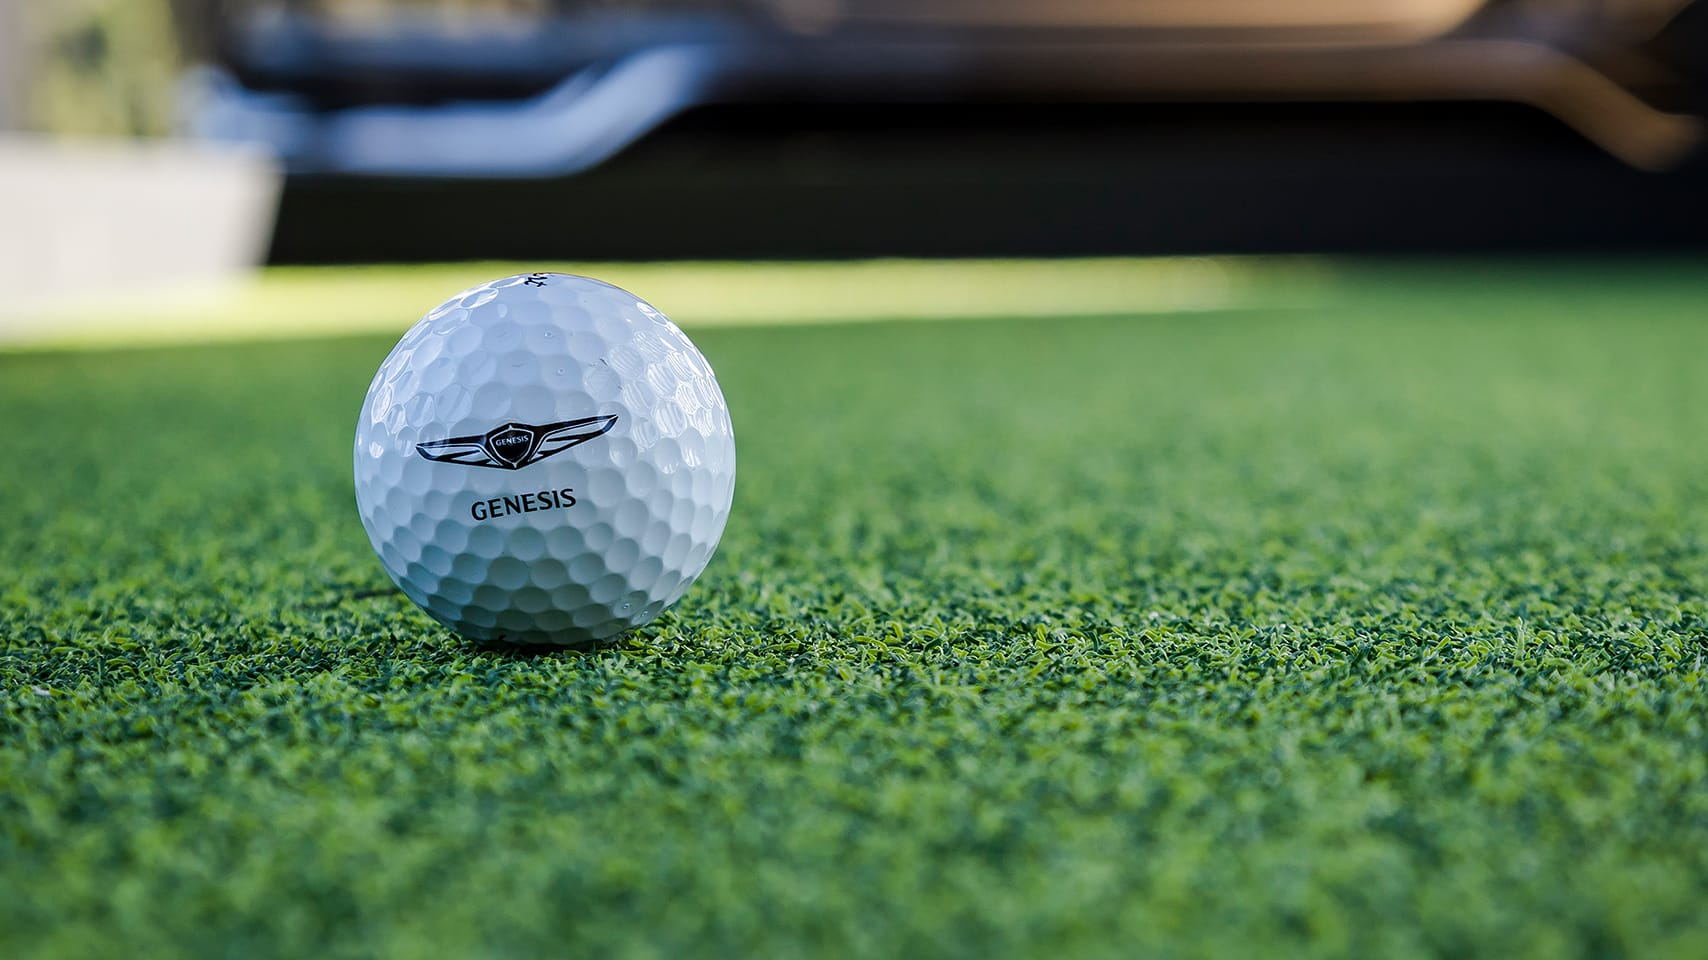 Golf ball with Genesis logo on green turf.